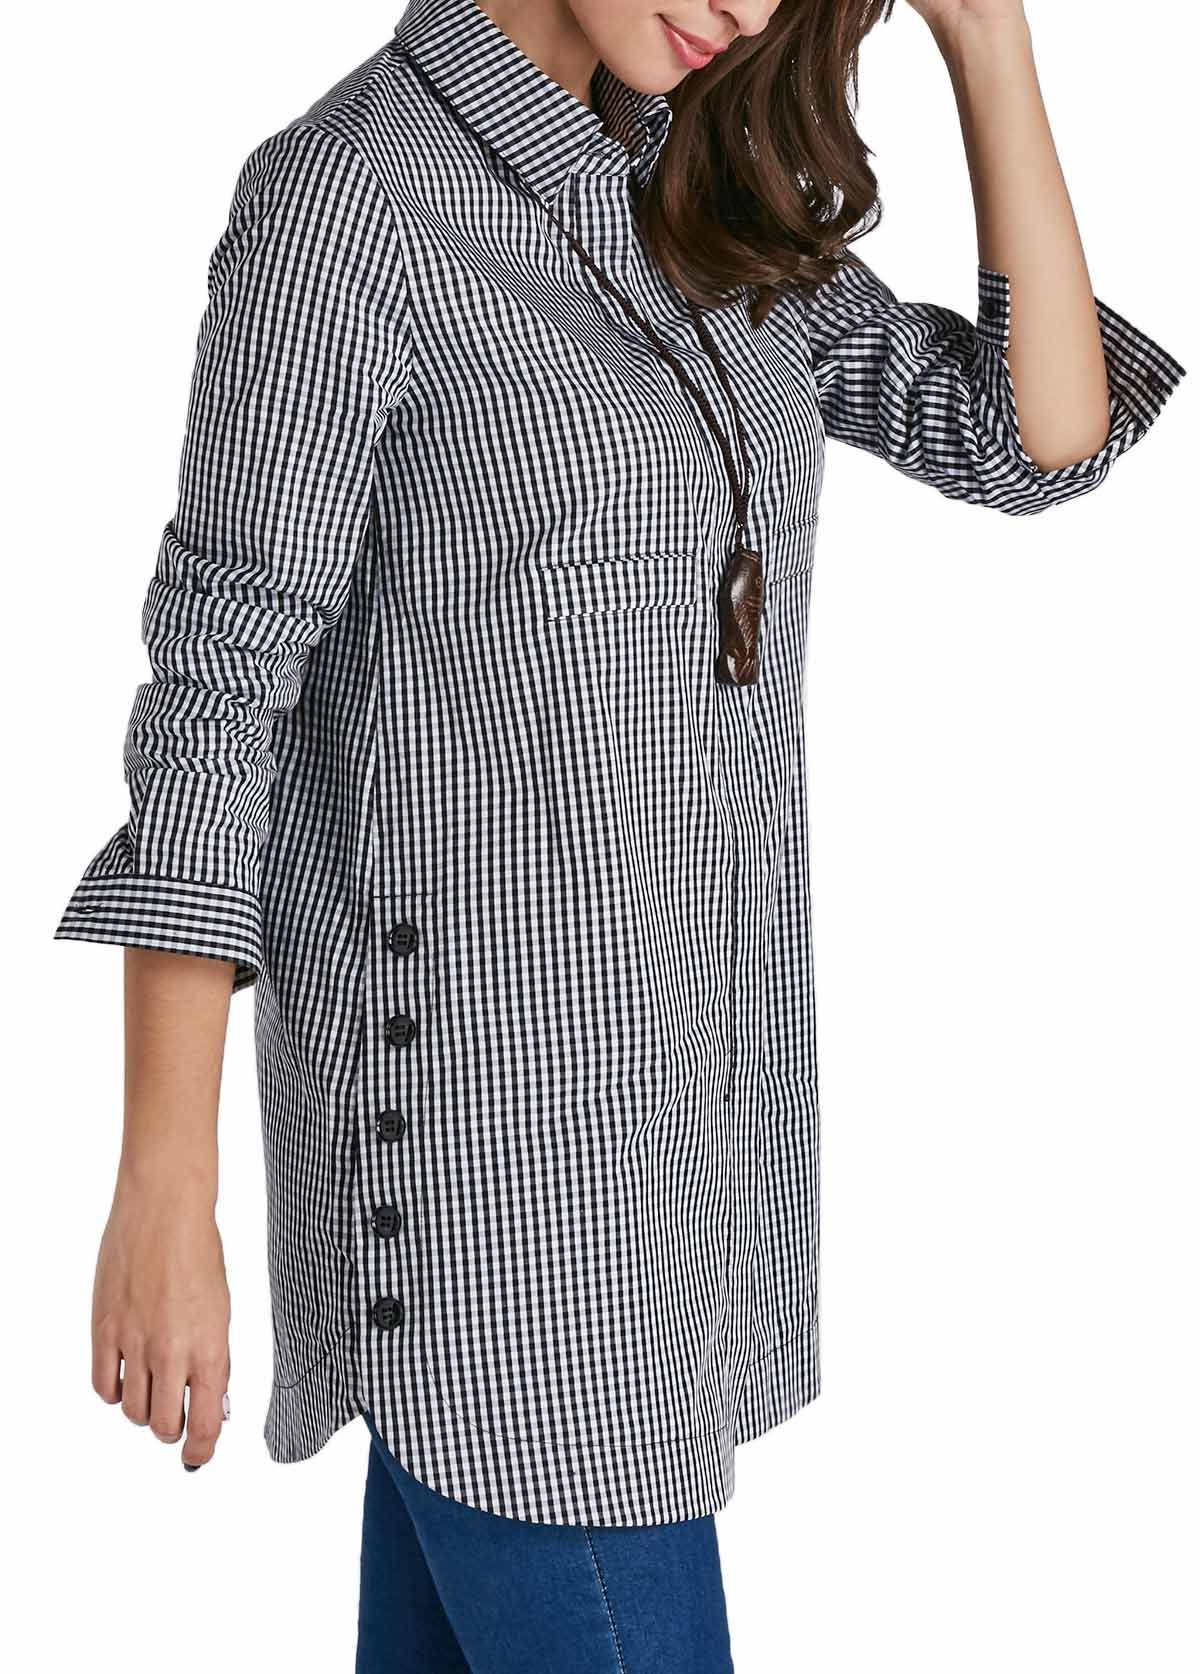 4fd75760d13 Curved Turndown Collar Button Up Plaid Print Shirt on sale only US$29.69  now, buy cheap Curved Turndown Collar Button Up Plaid Print Shirt at  liligal.com